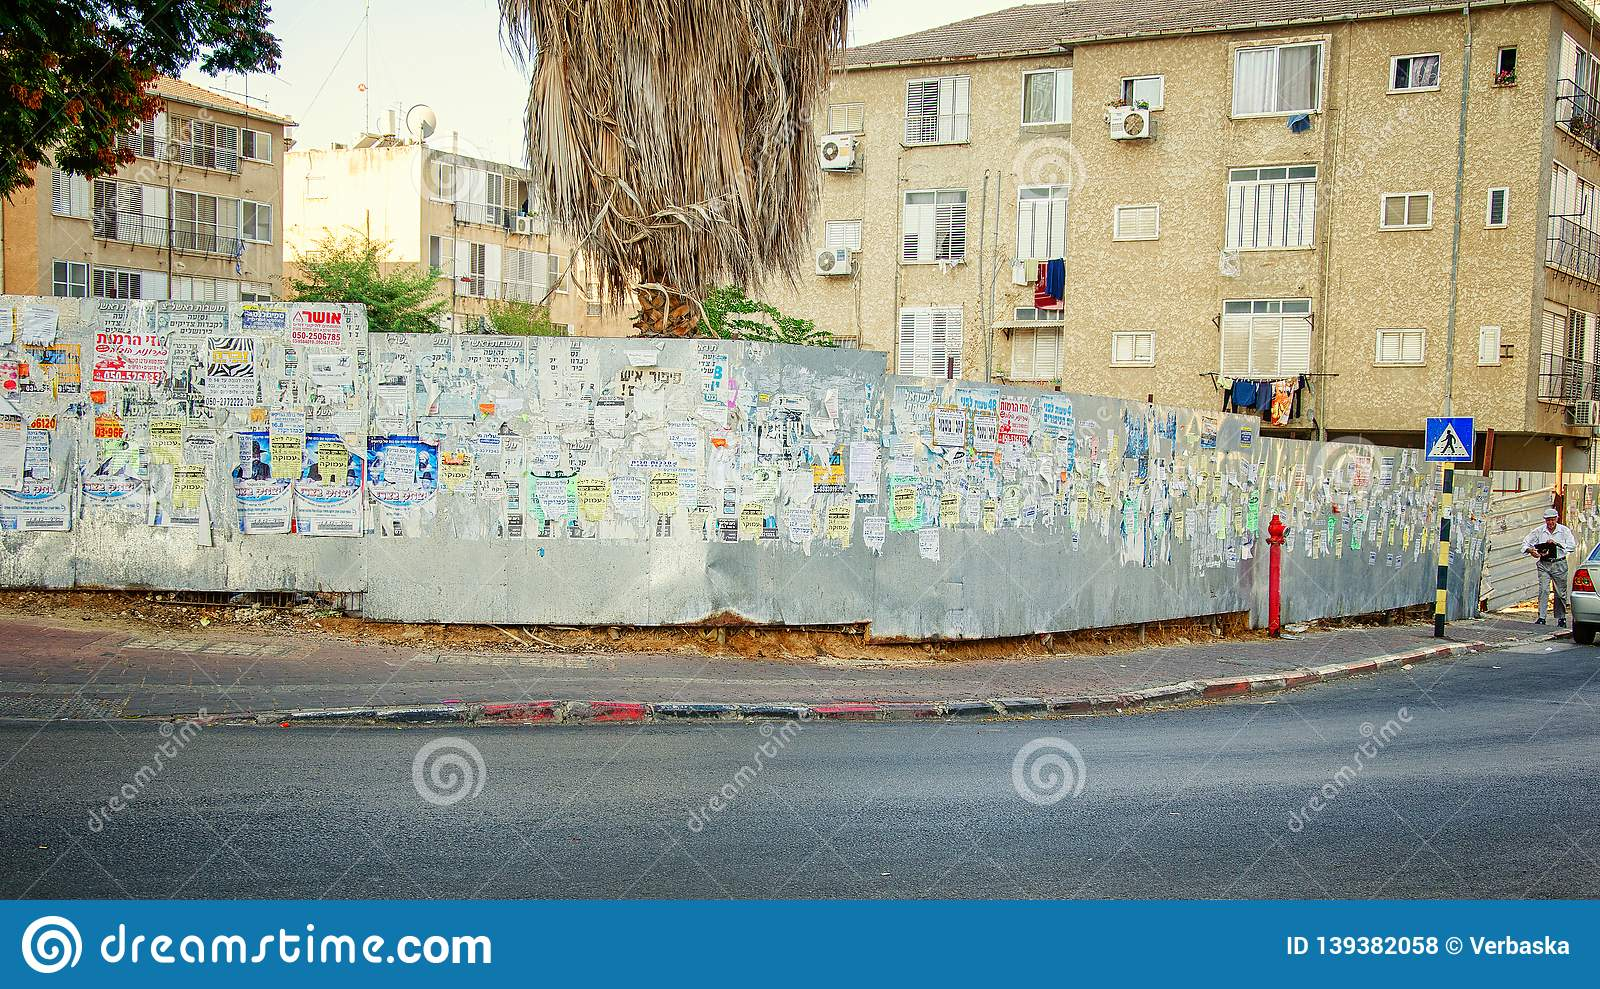 Personal advertisements and posters cover a metal fence